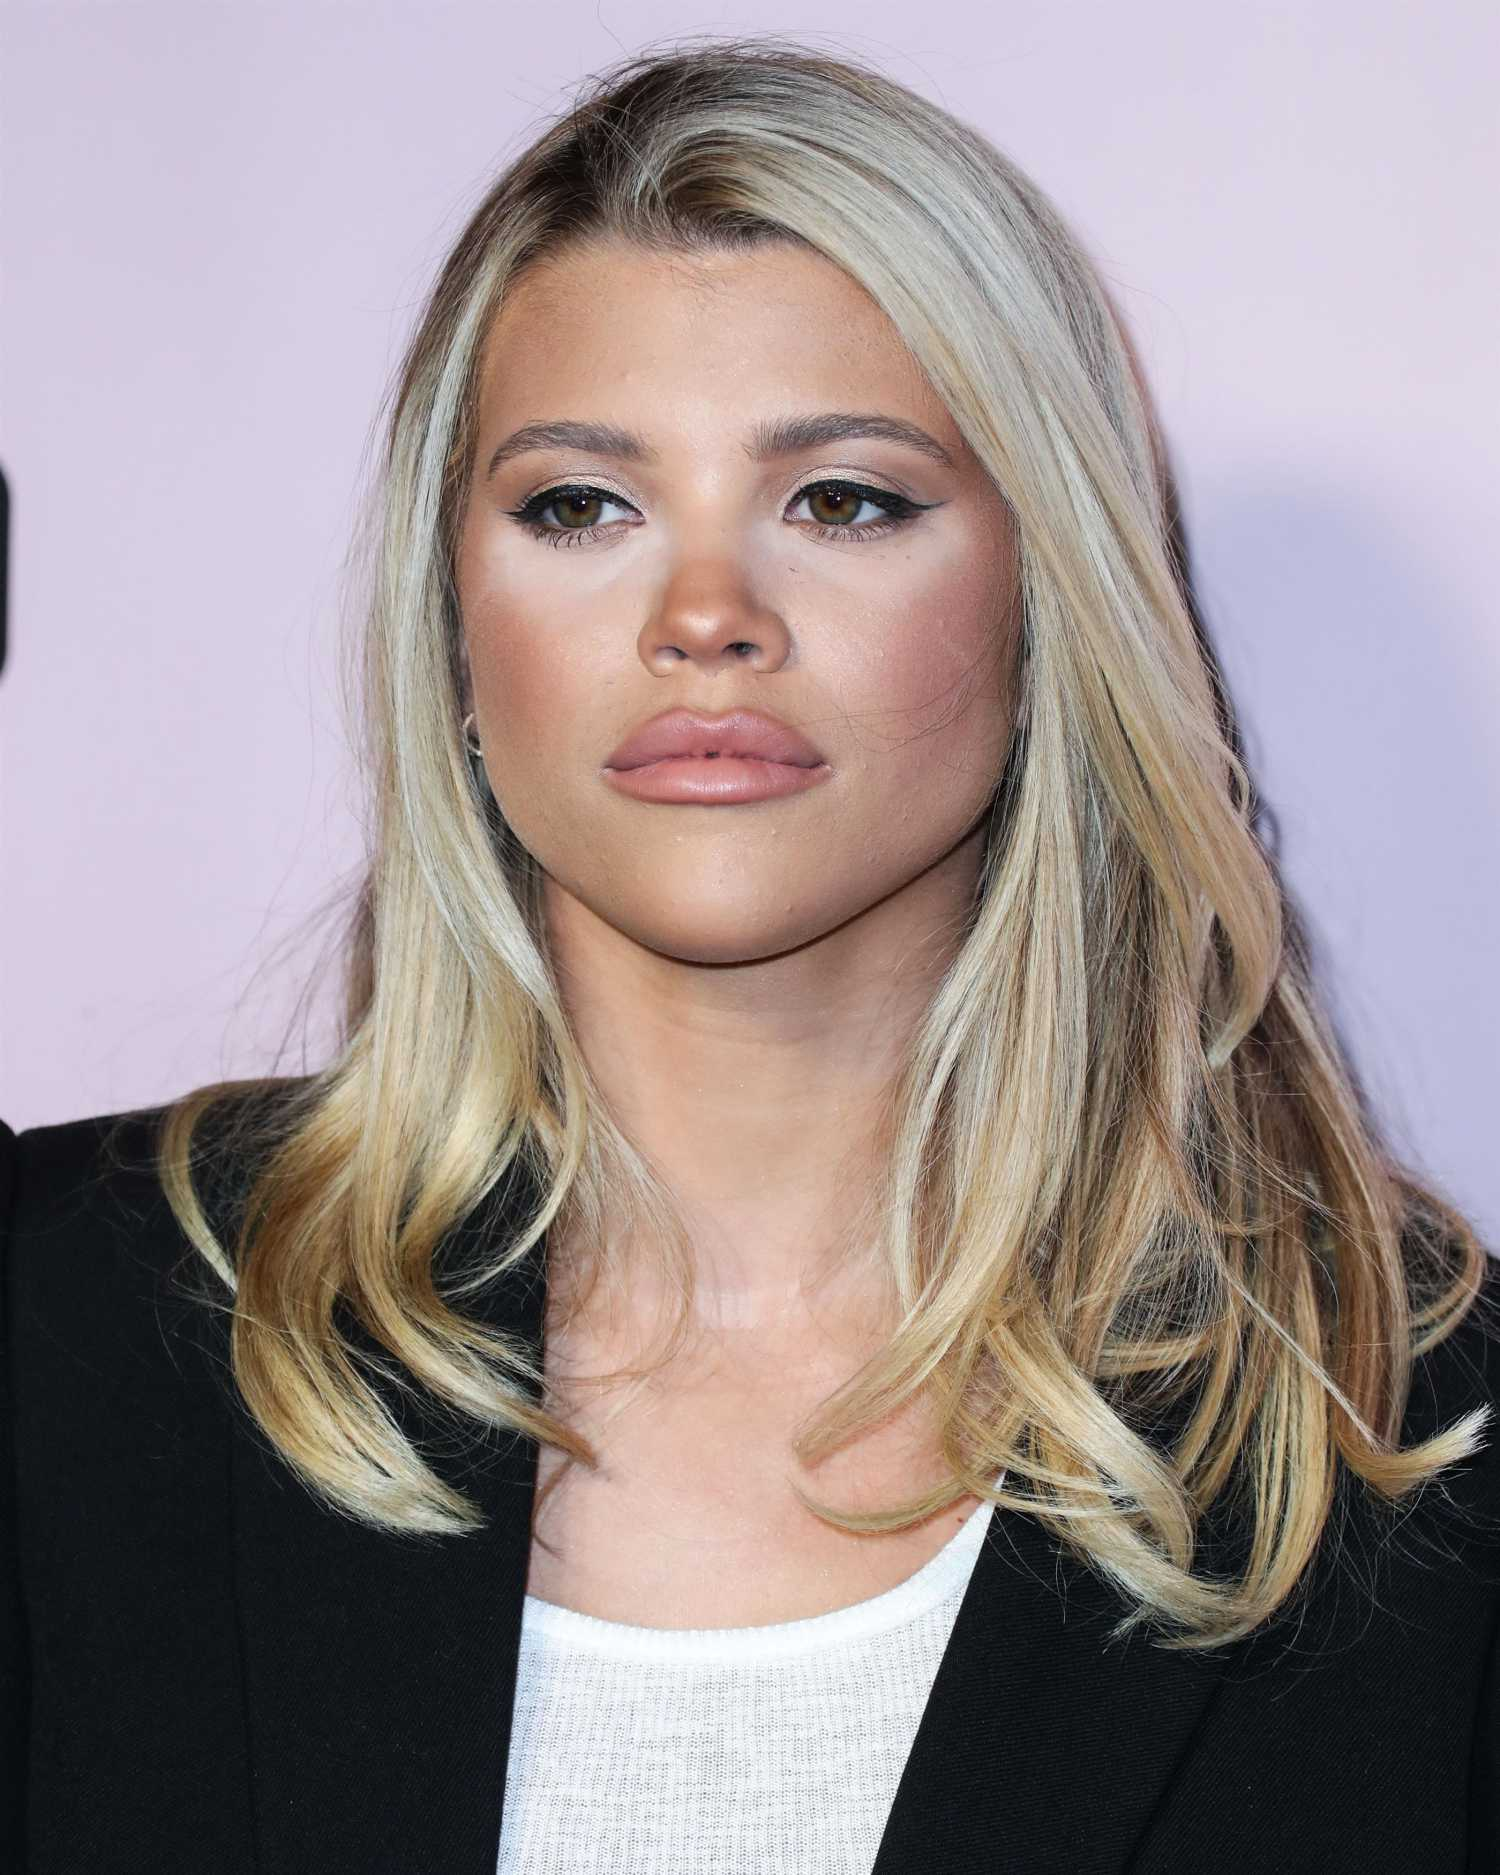 Sofia Richie Attends Boohoo X All That Glitters Launch